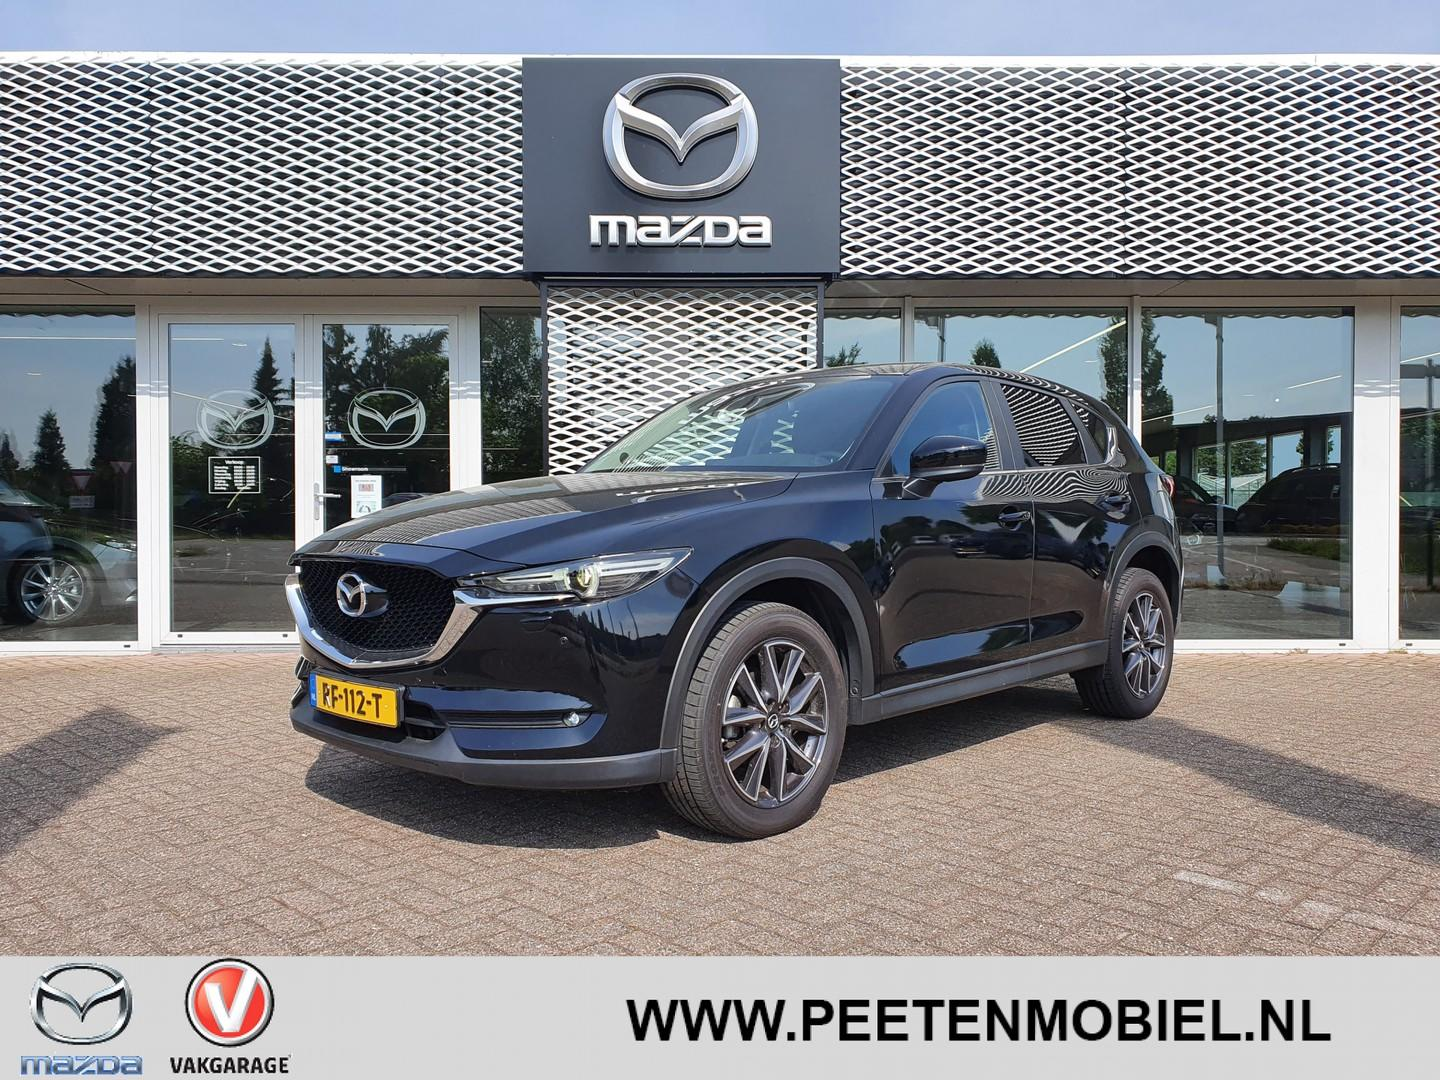 Mazda Cx-5 2.0 skyactiv-g 165 ts+ automaat safety pack